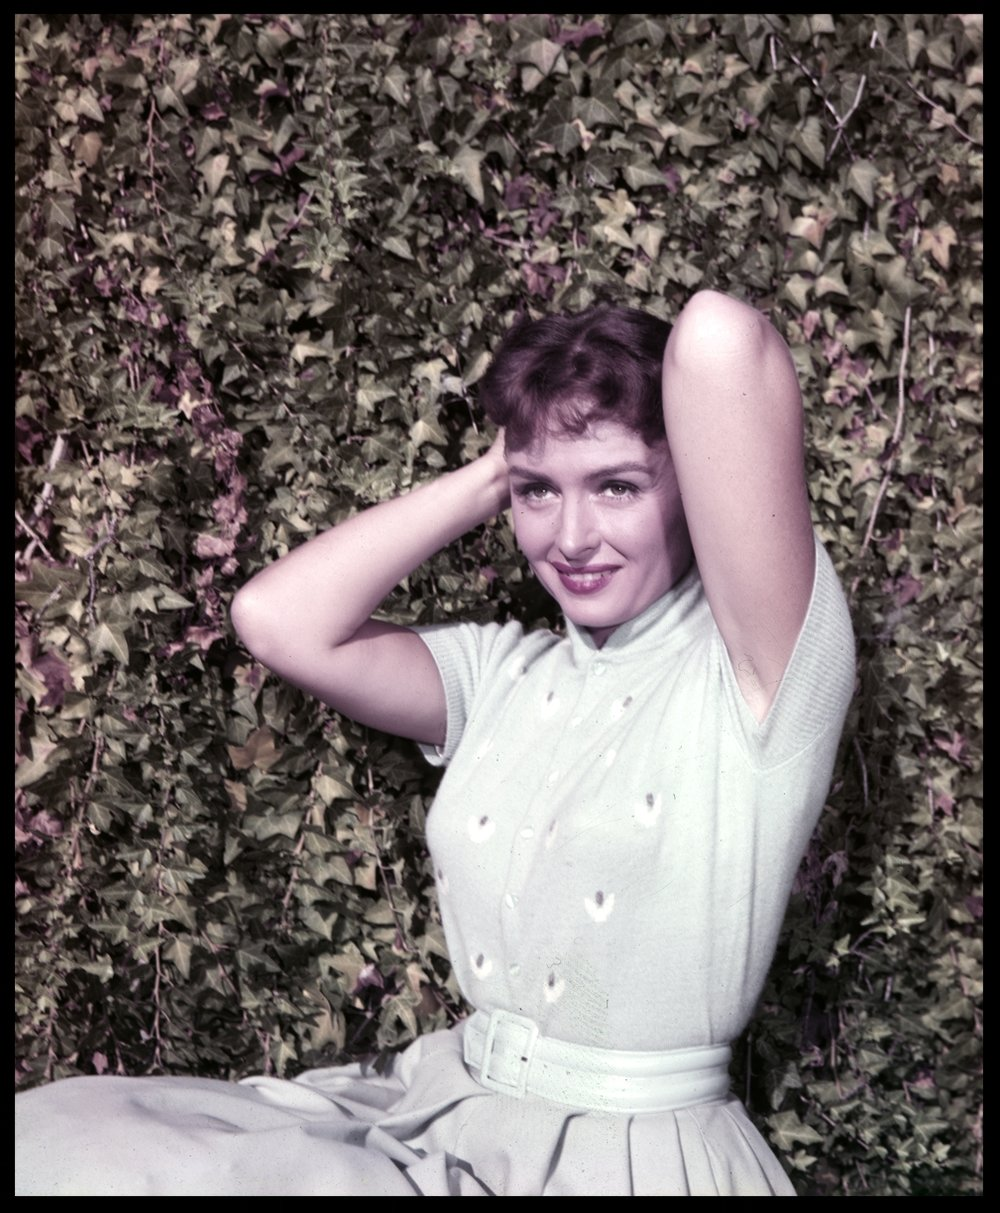 Donna Reed c.1958 from original 4x5 transparency